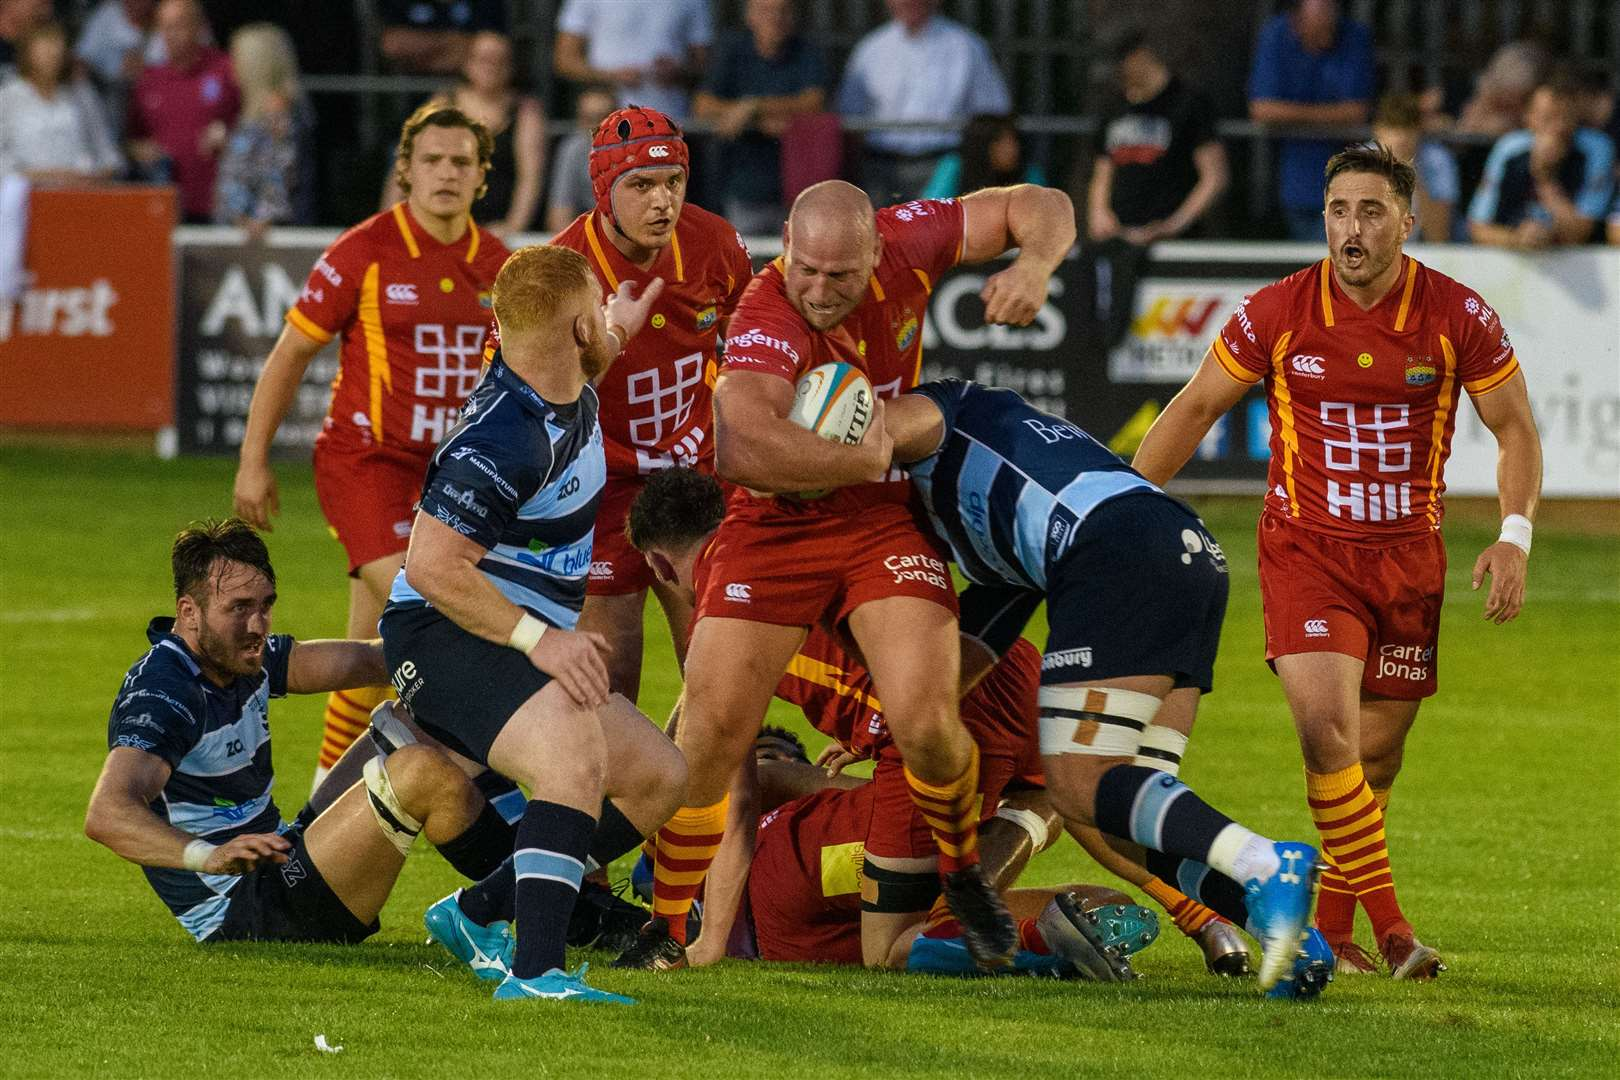 Mike Mayhew in action for Cambridge against Bedford Blues. Picture: Chris Fell (15748729)